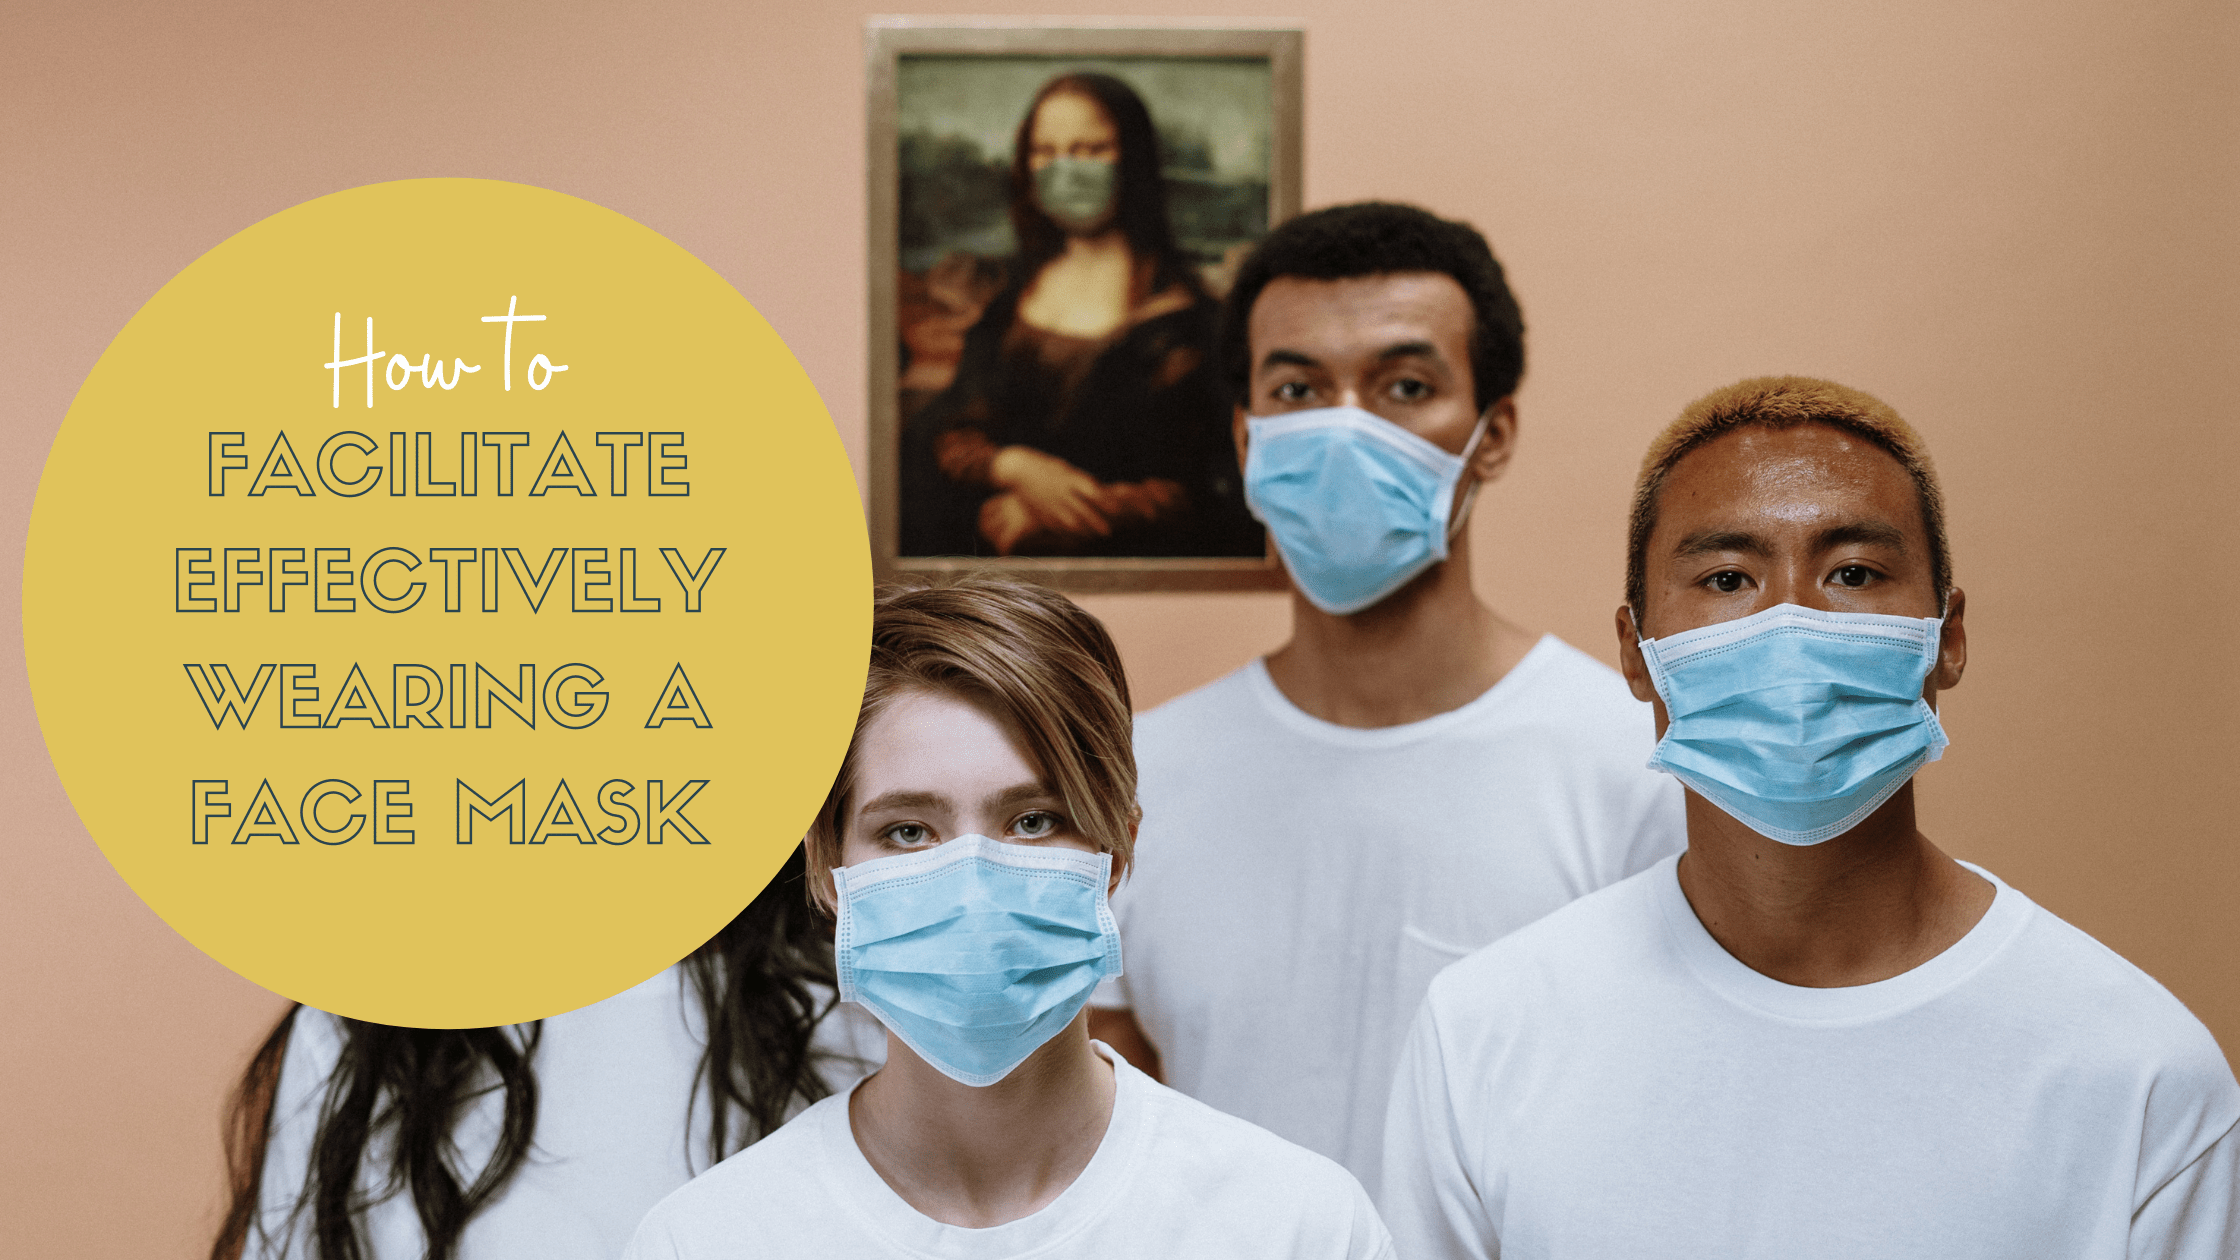 How to Facilitate Effectively Wearing a Face Mask